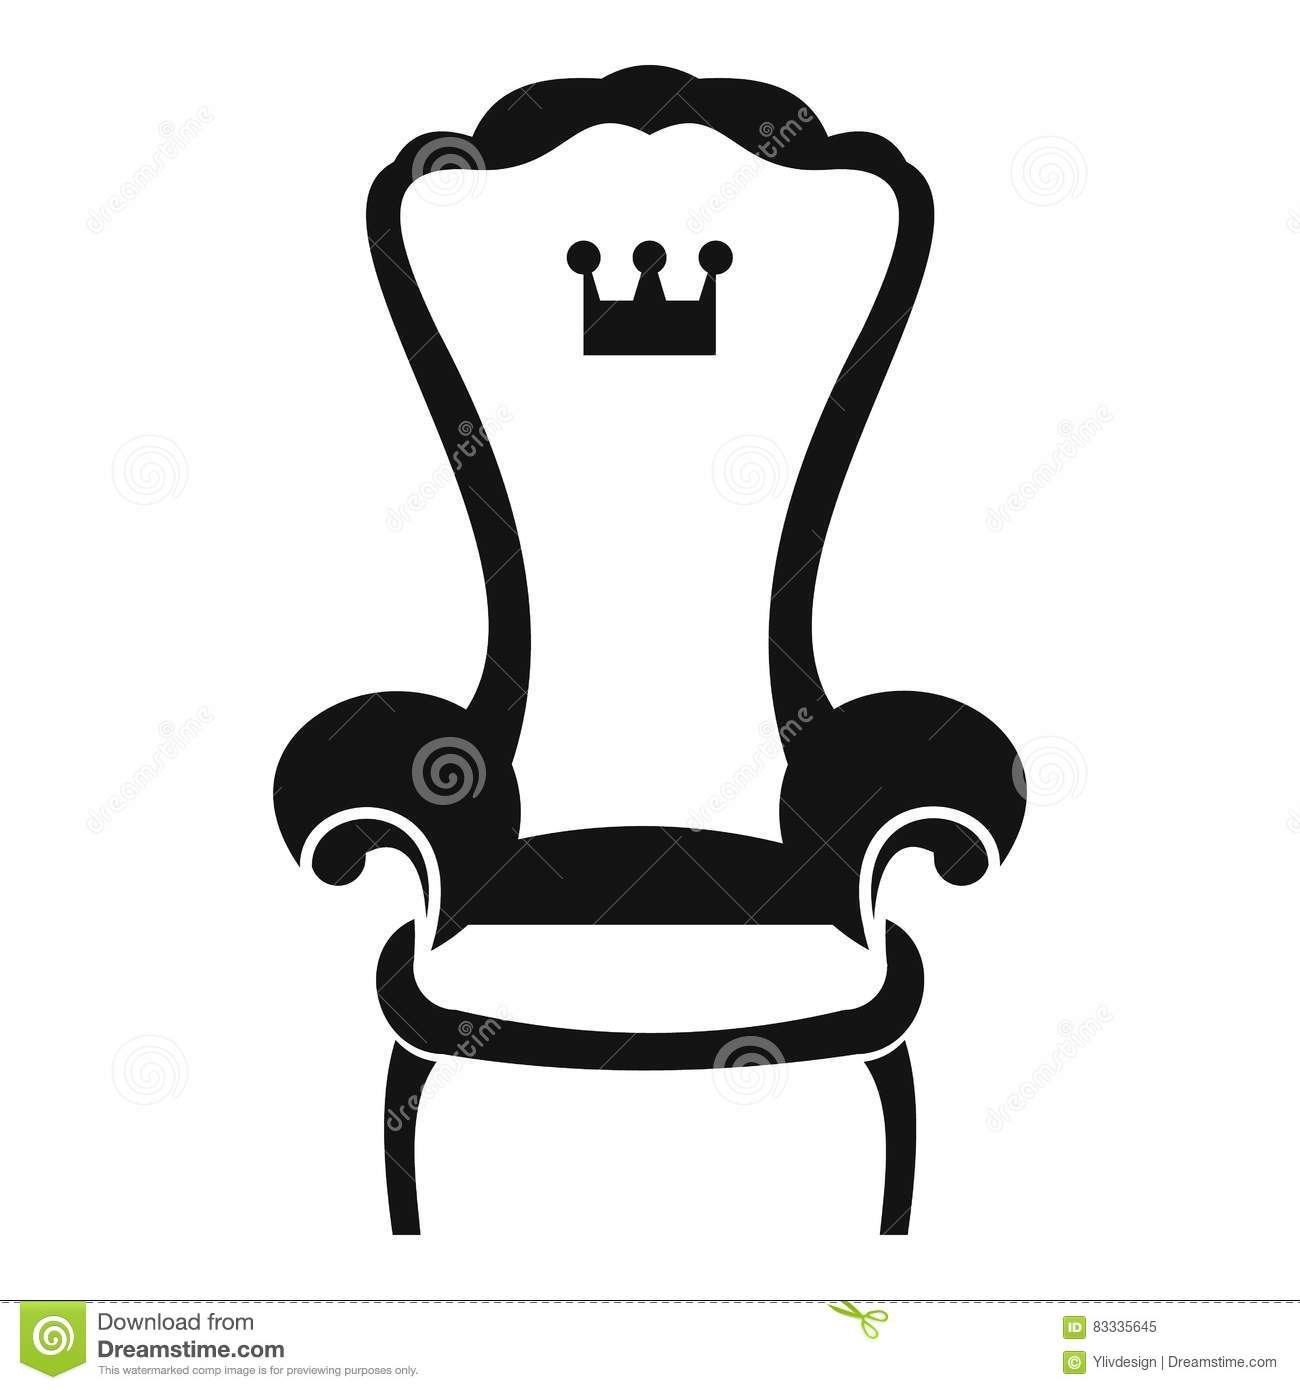 Throne clipart black and white clip freeuse Throne Clipart Black And White (89+ images in Collection) Page 3 clip freeuse